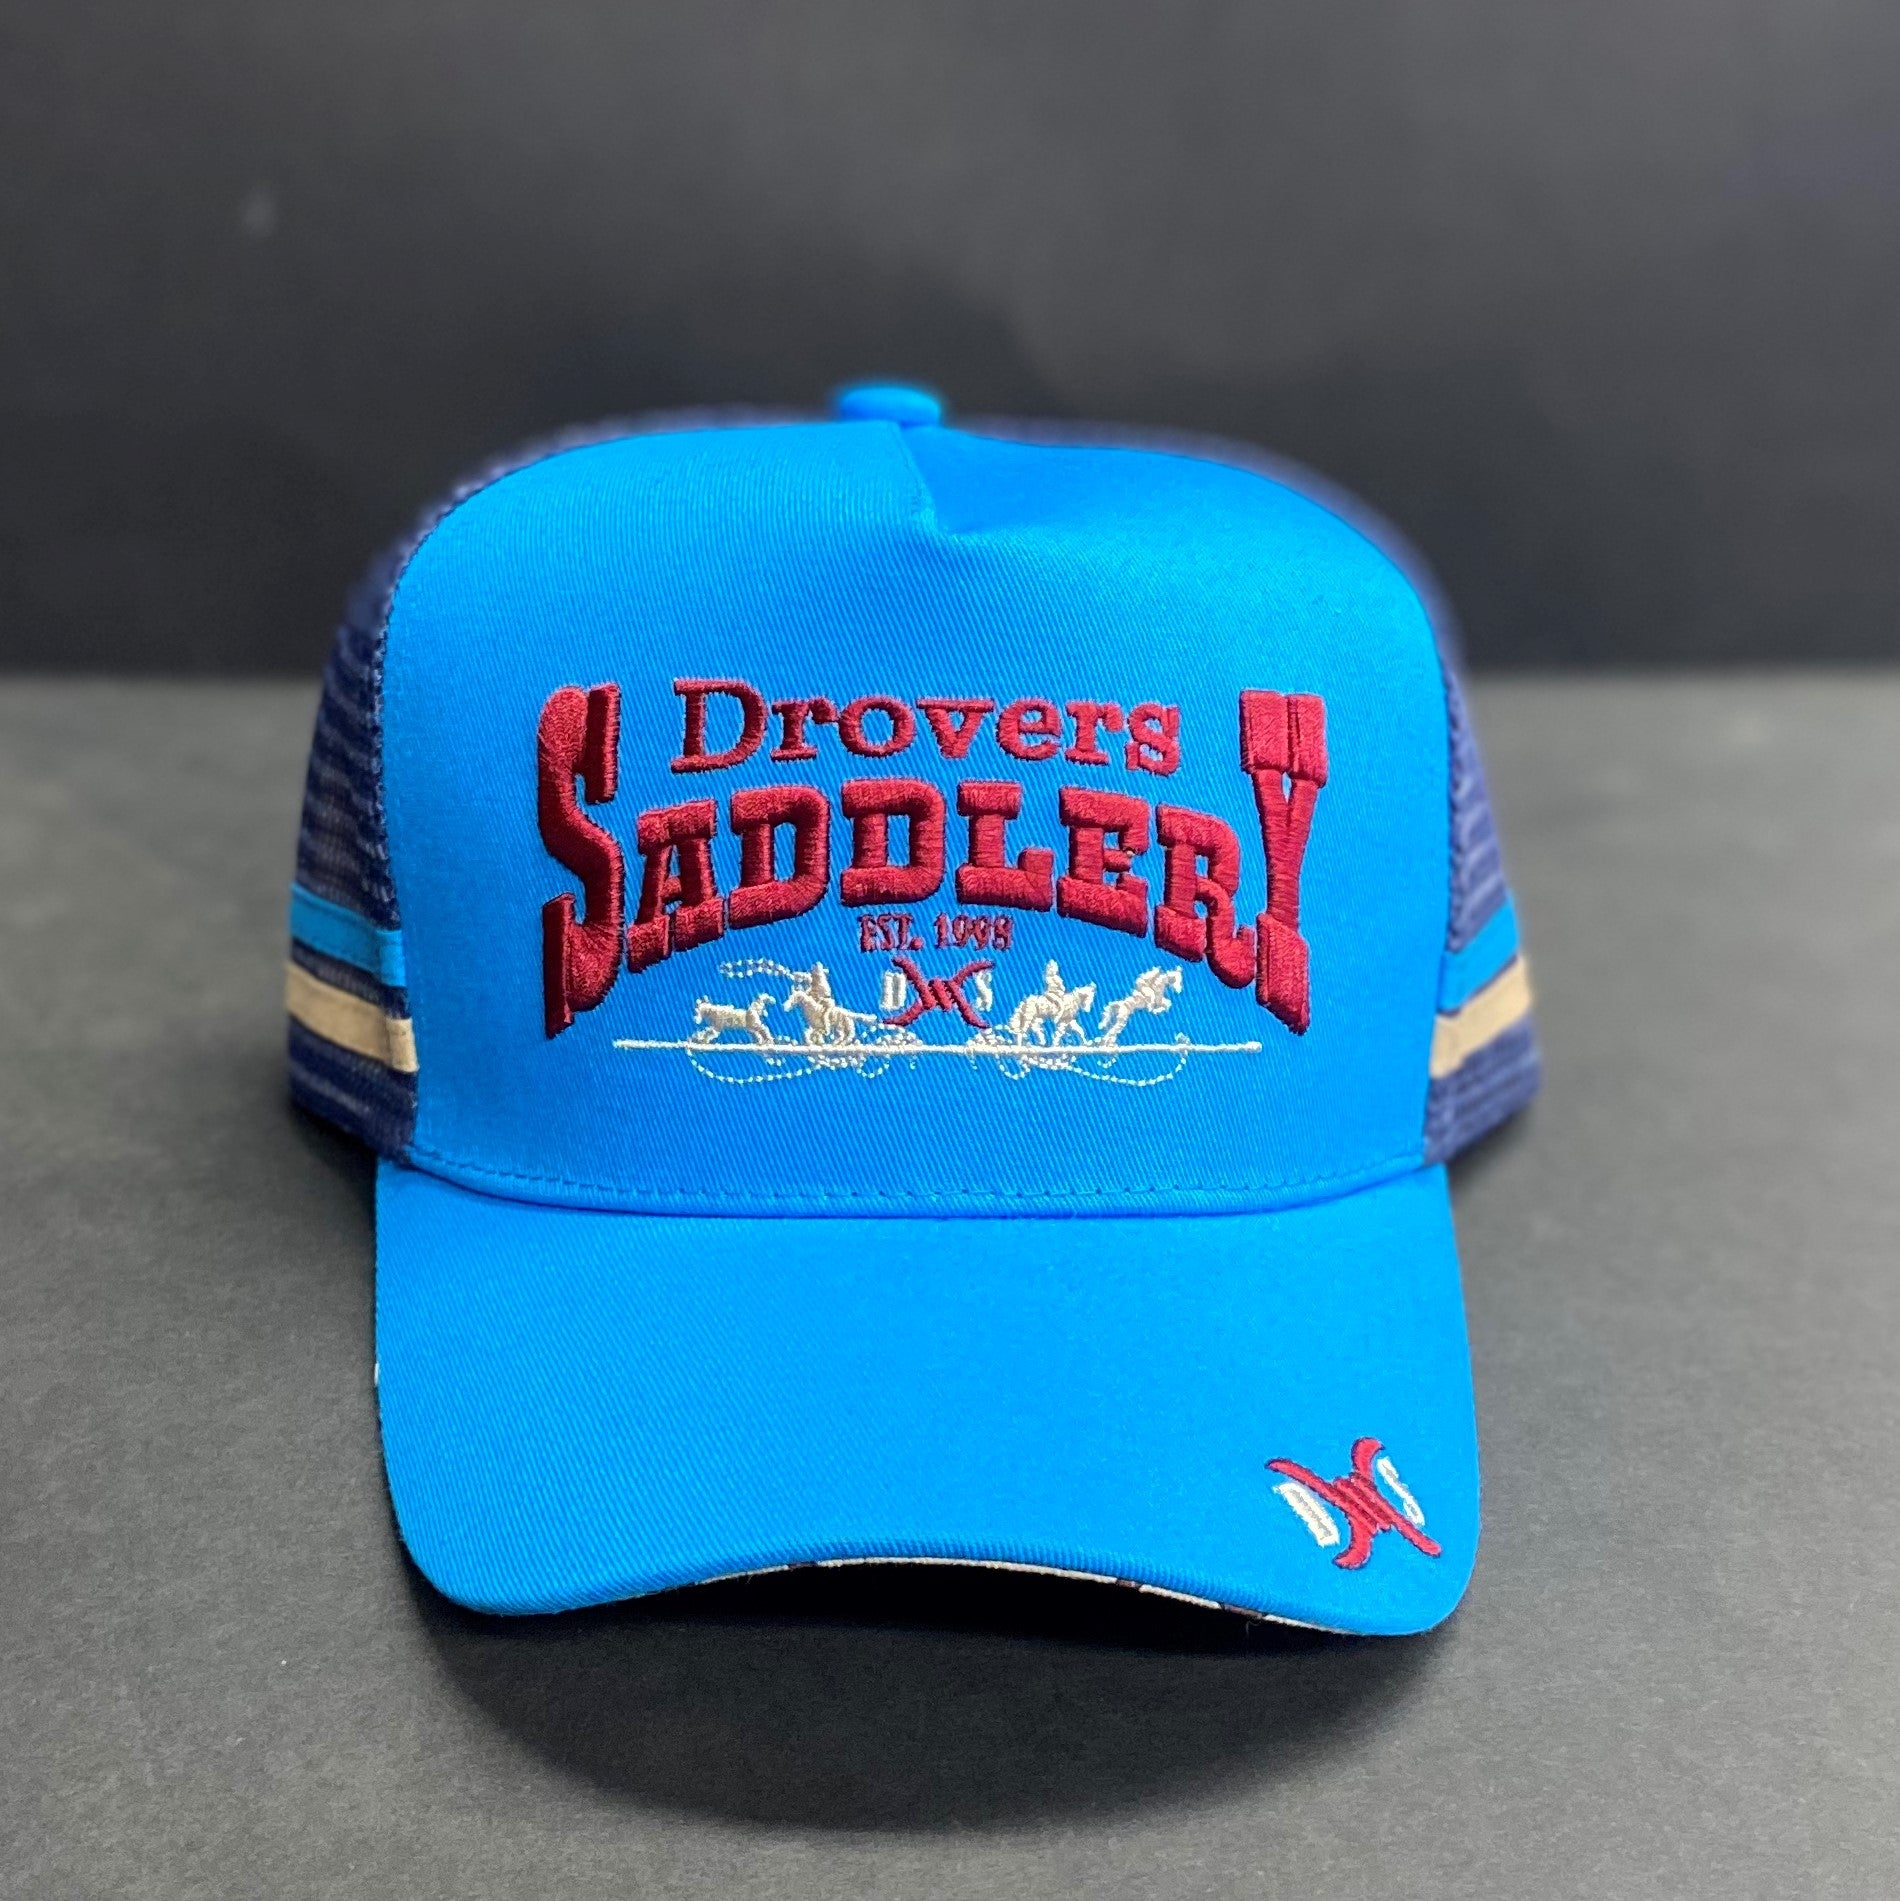 Drovers Saddlery Cap - Limited Edition